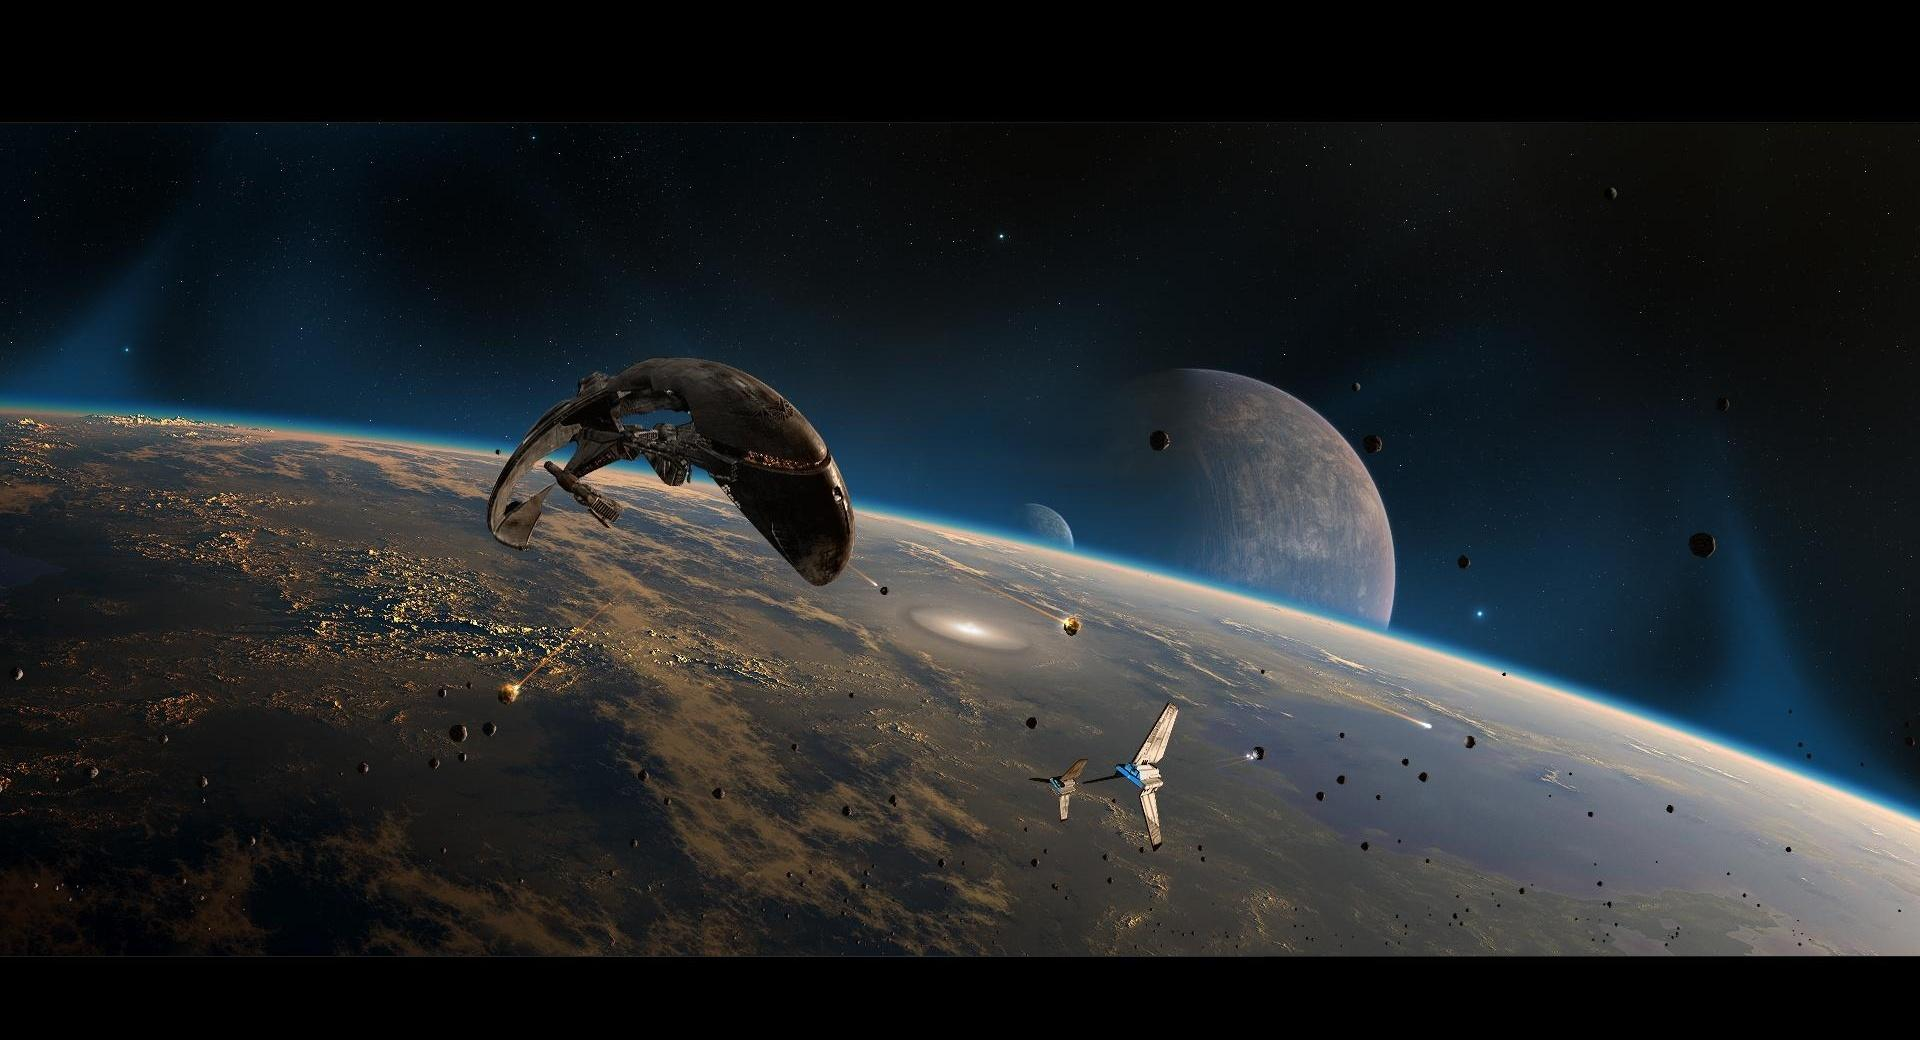 Spaceships in Space wallpapers HD quality